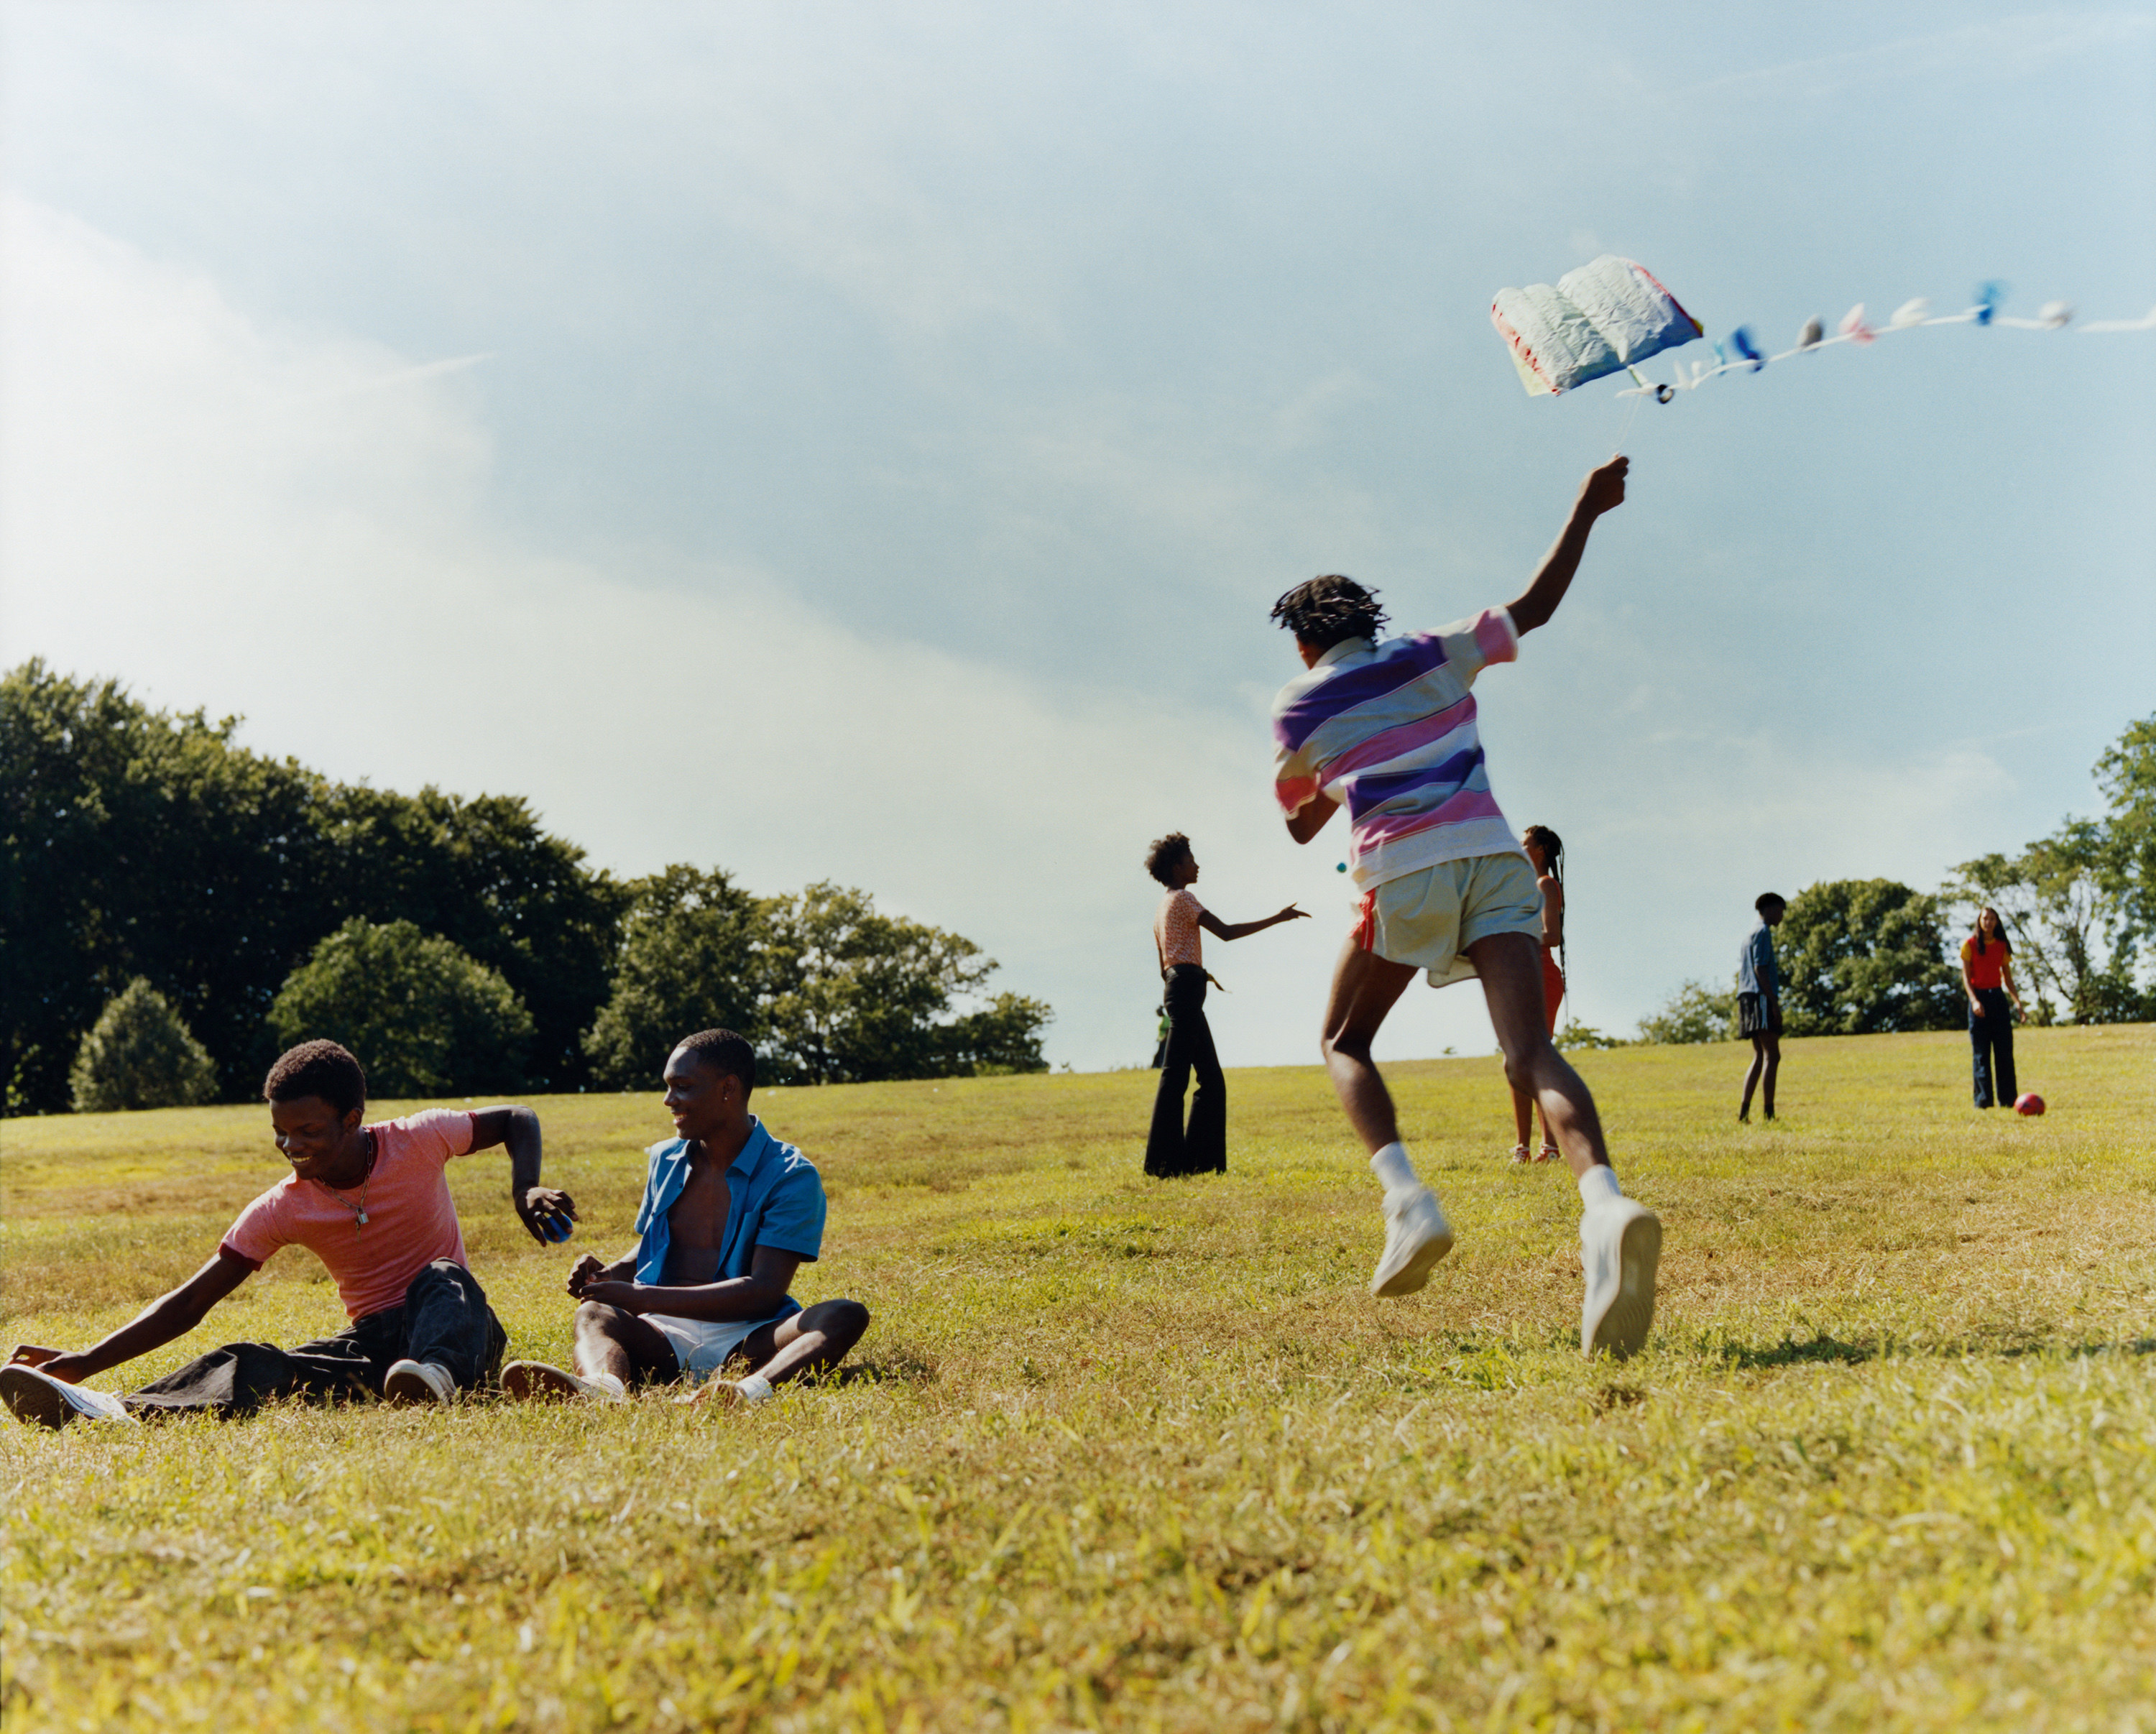 Young teenagers running and playing in a field under a blue sky.